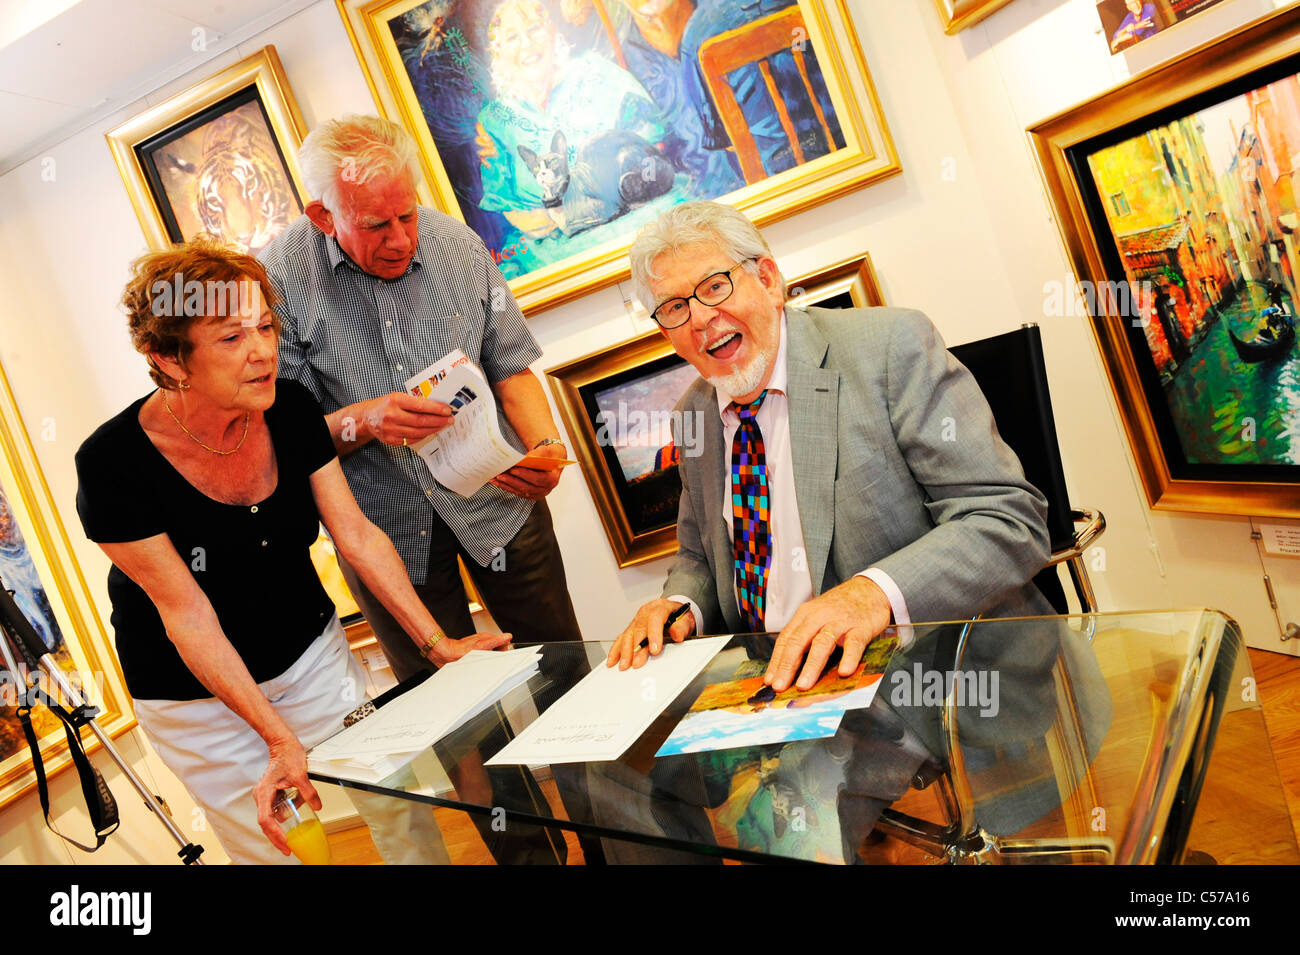 rolf harris at a book signing at an art gallery in Windsor - Stock Image